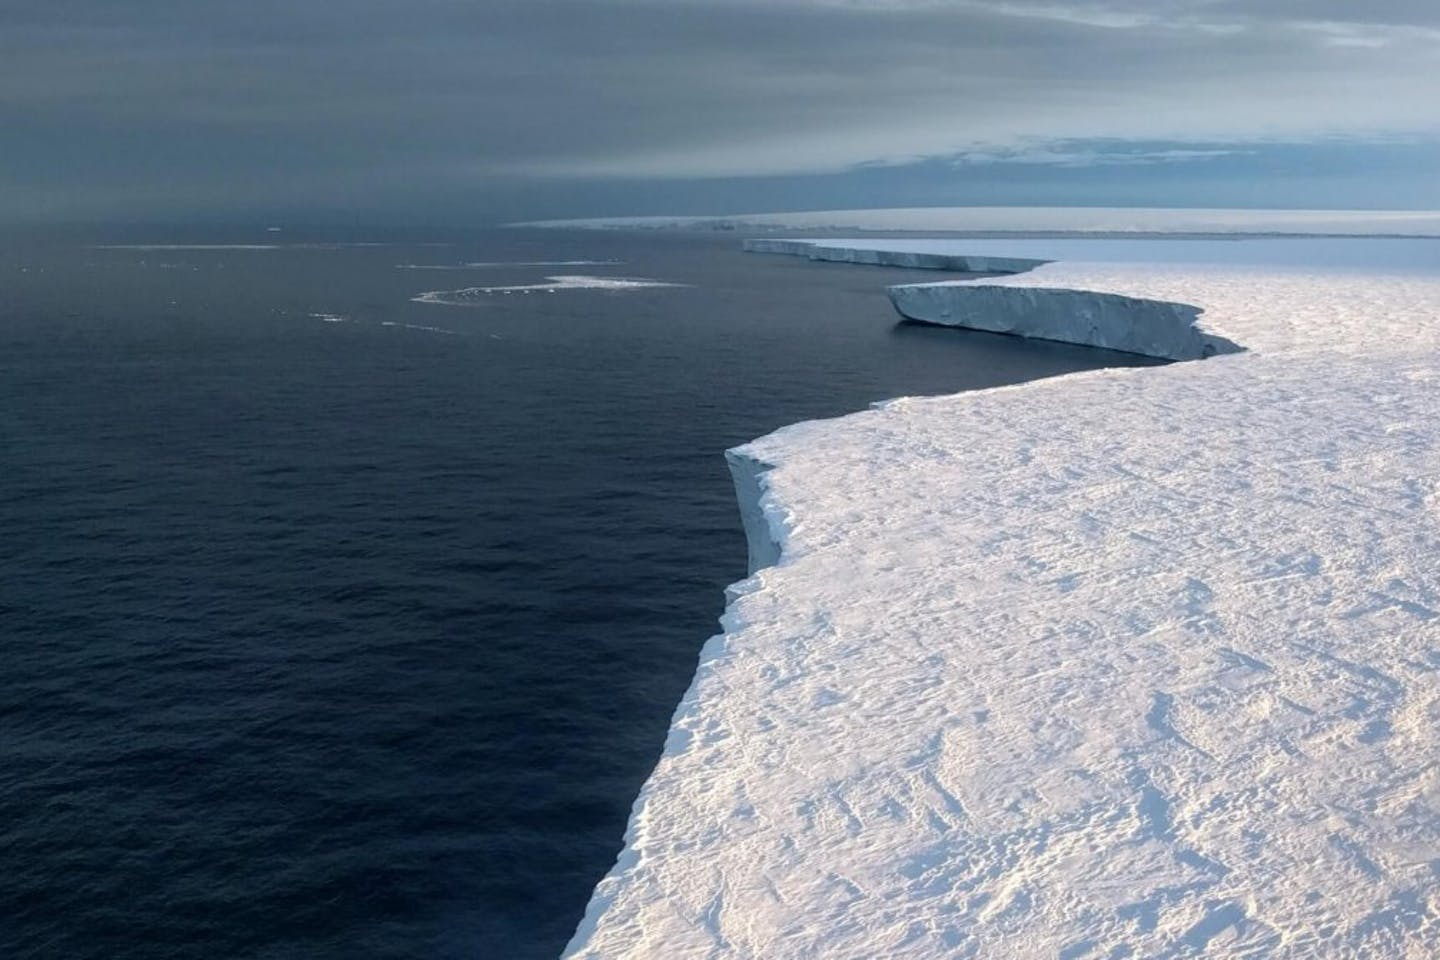 Antarctic melt Jan 2018